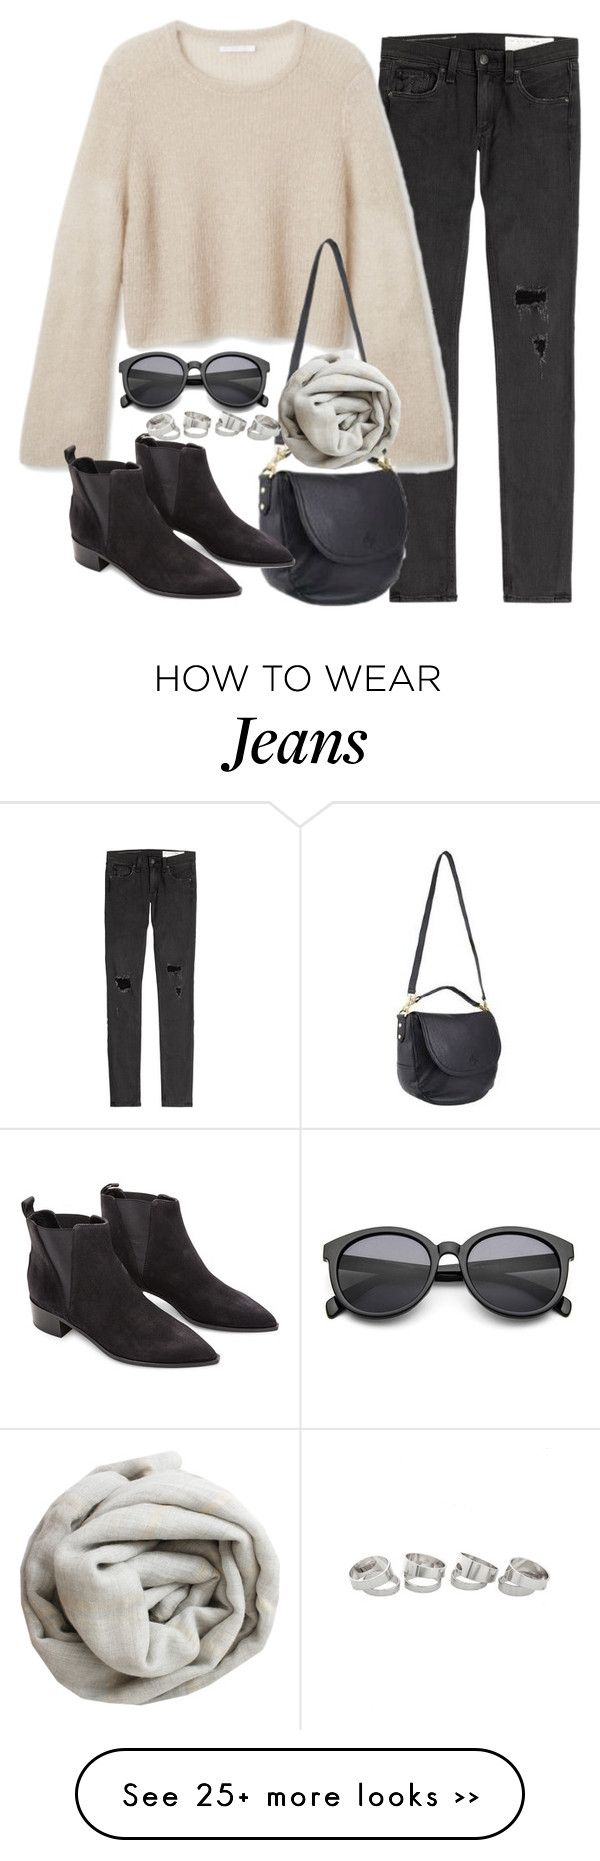 """Untitled #3000"" by peachv on Polyvore"